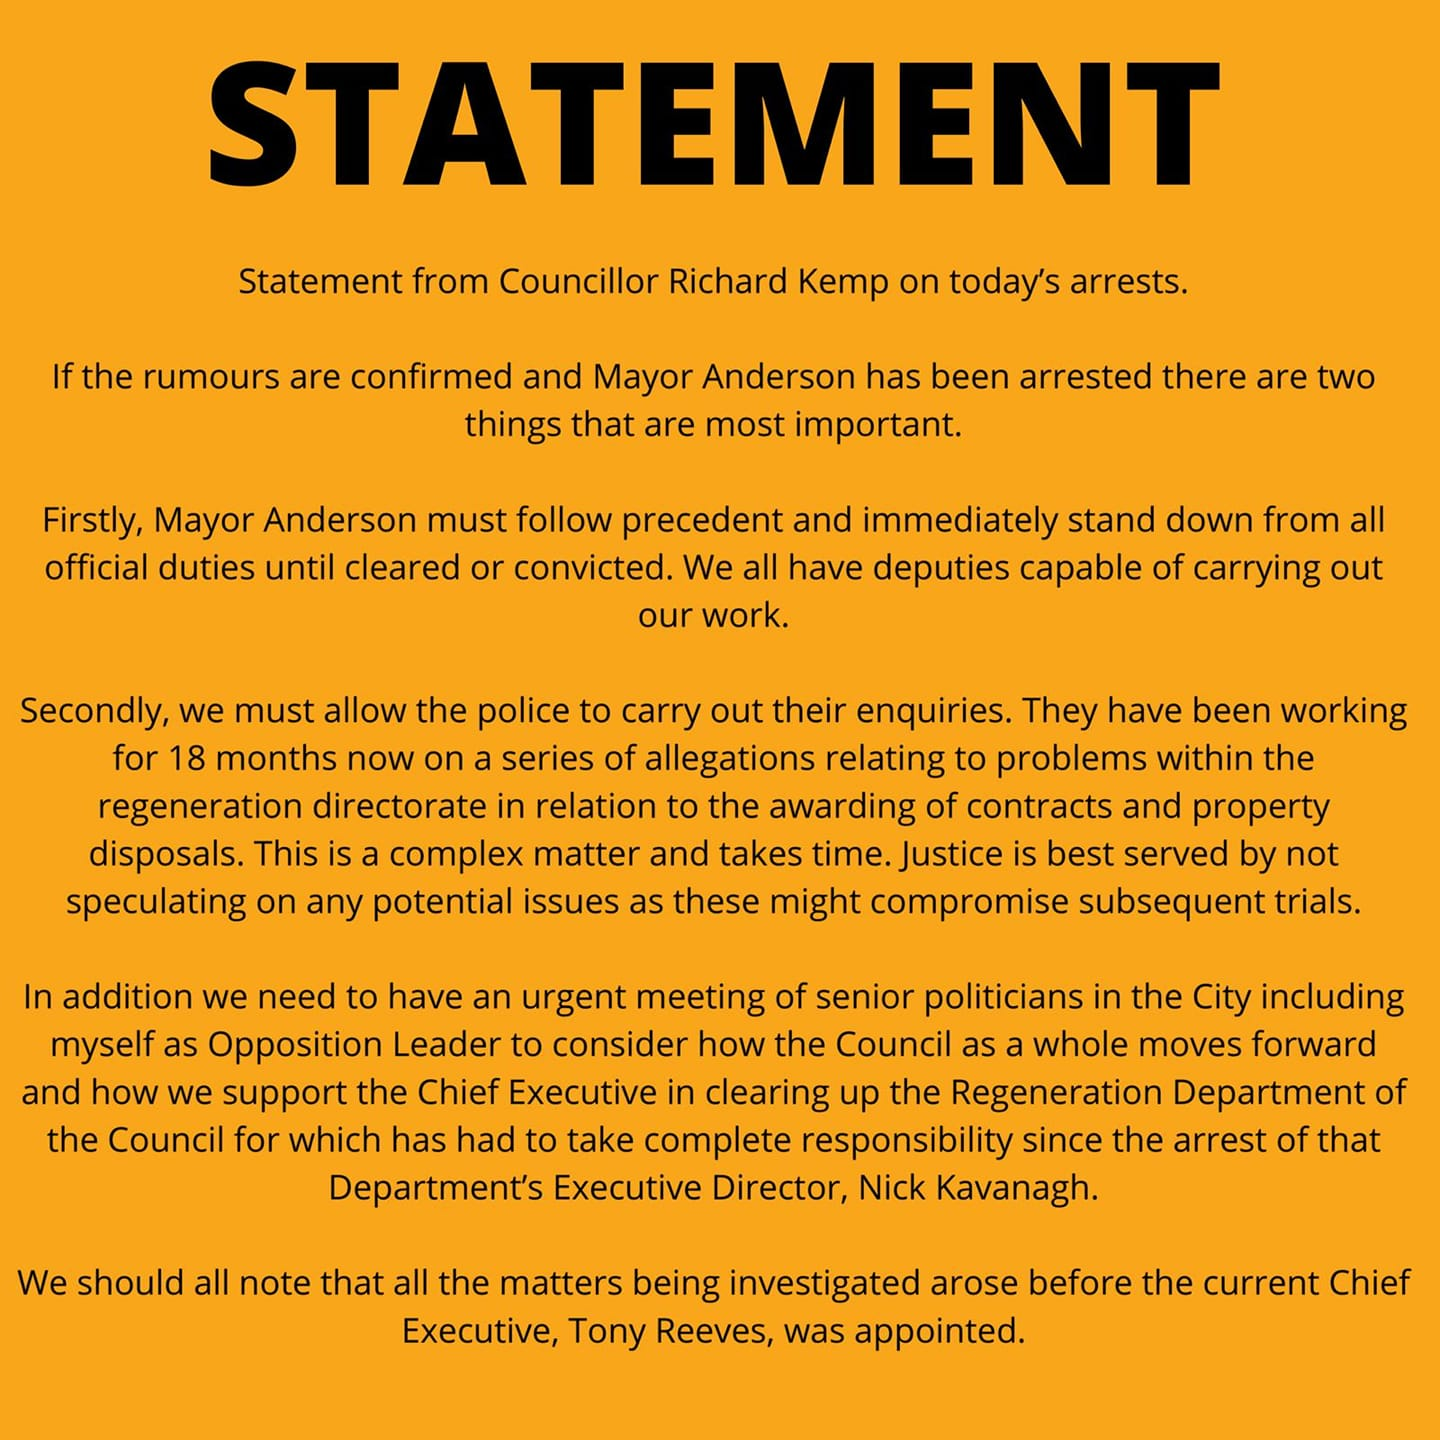 Statement on the arrest of the Mayor of Liverpool